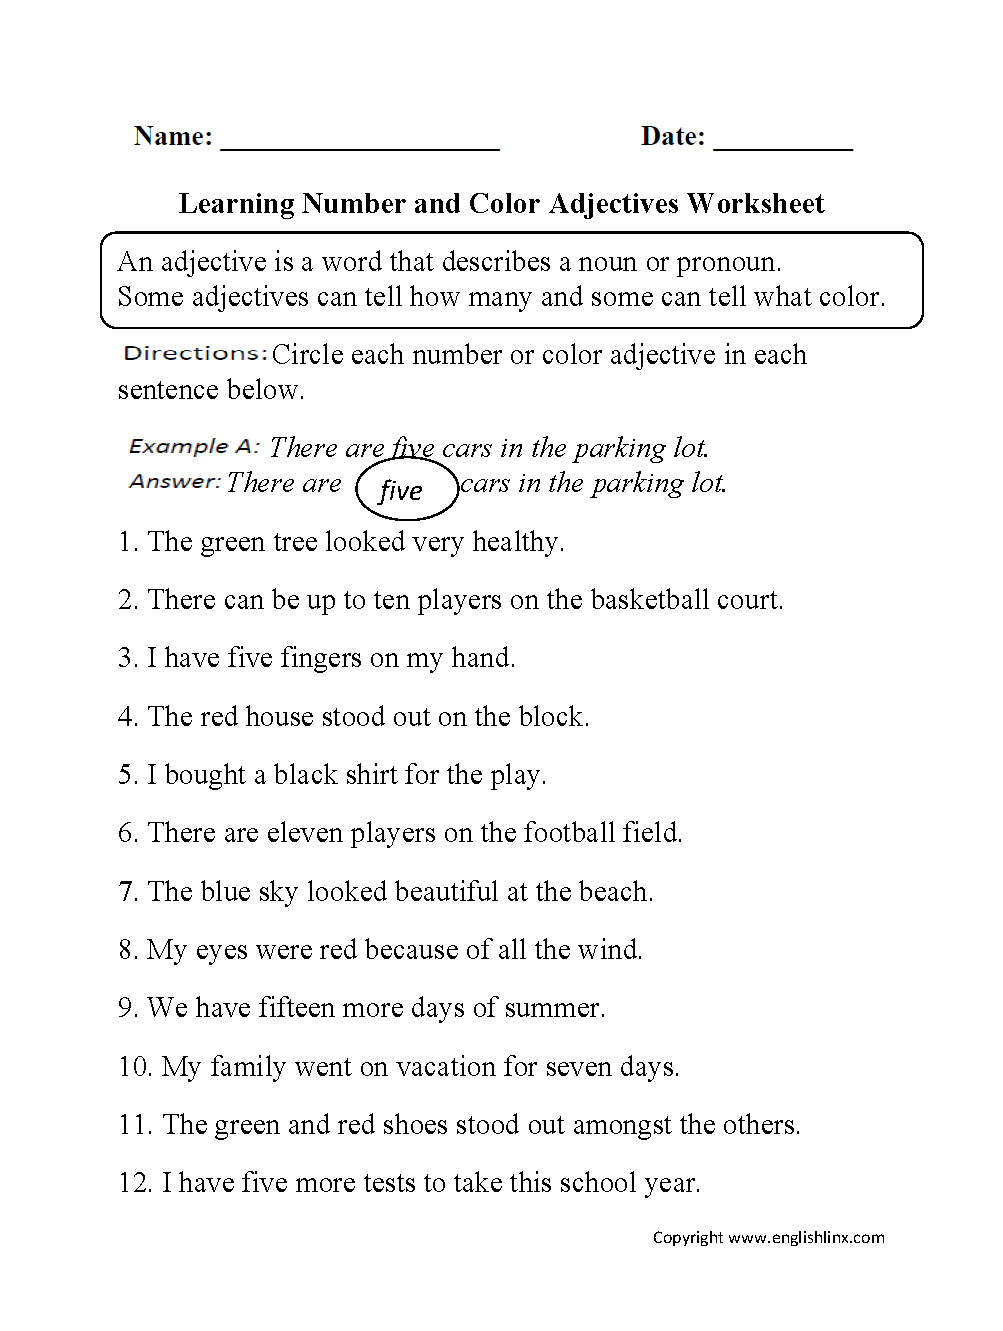 Worksheets Parts Of Speech Worksheet parts speech worksheets adjective worksheets